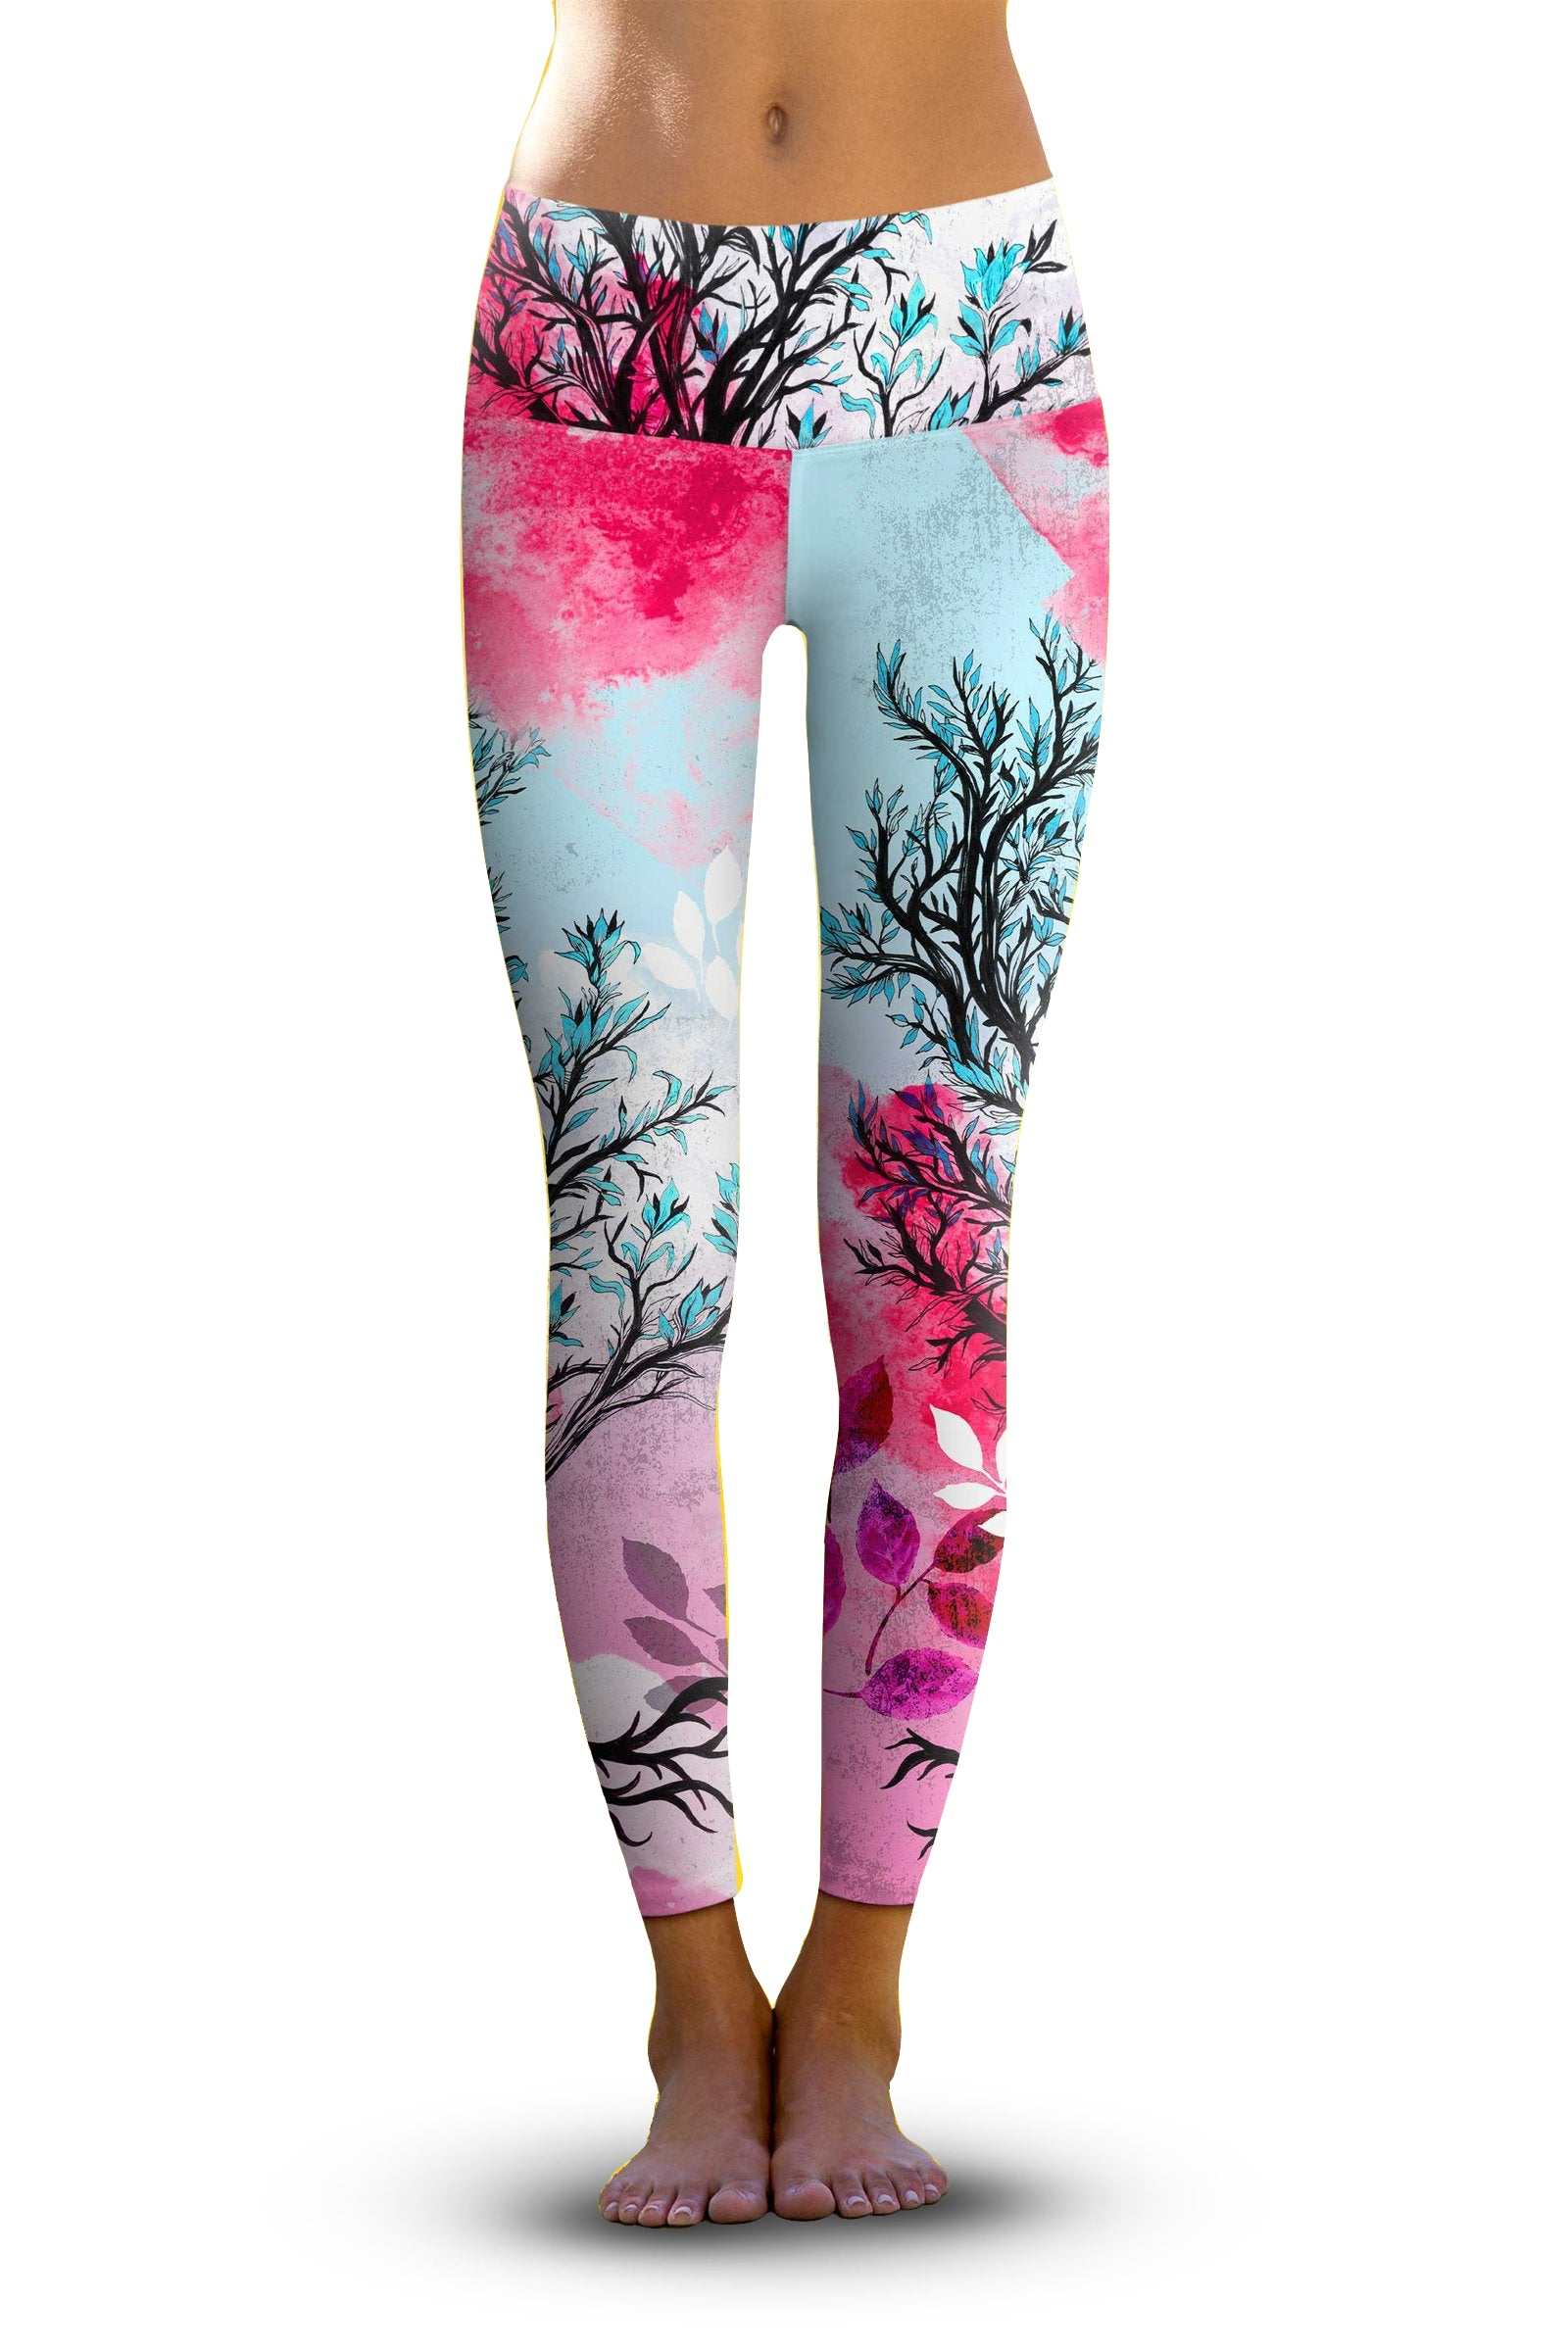 #Deep Roots, Eco-Friendly Active Performance Leggings